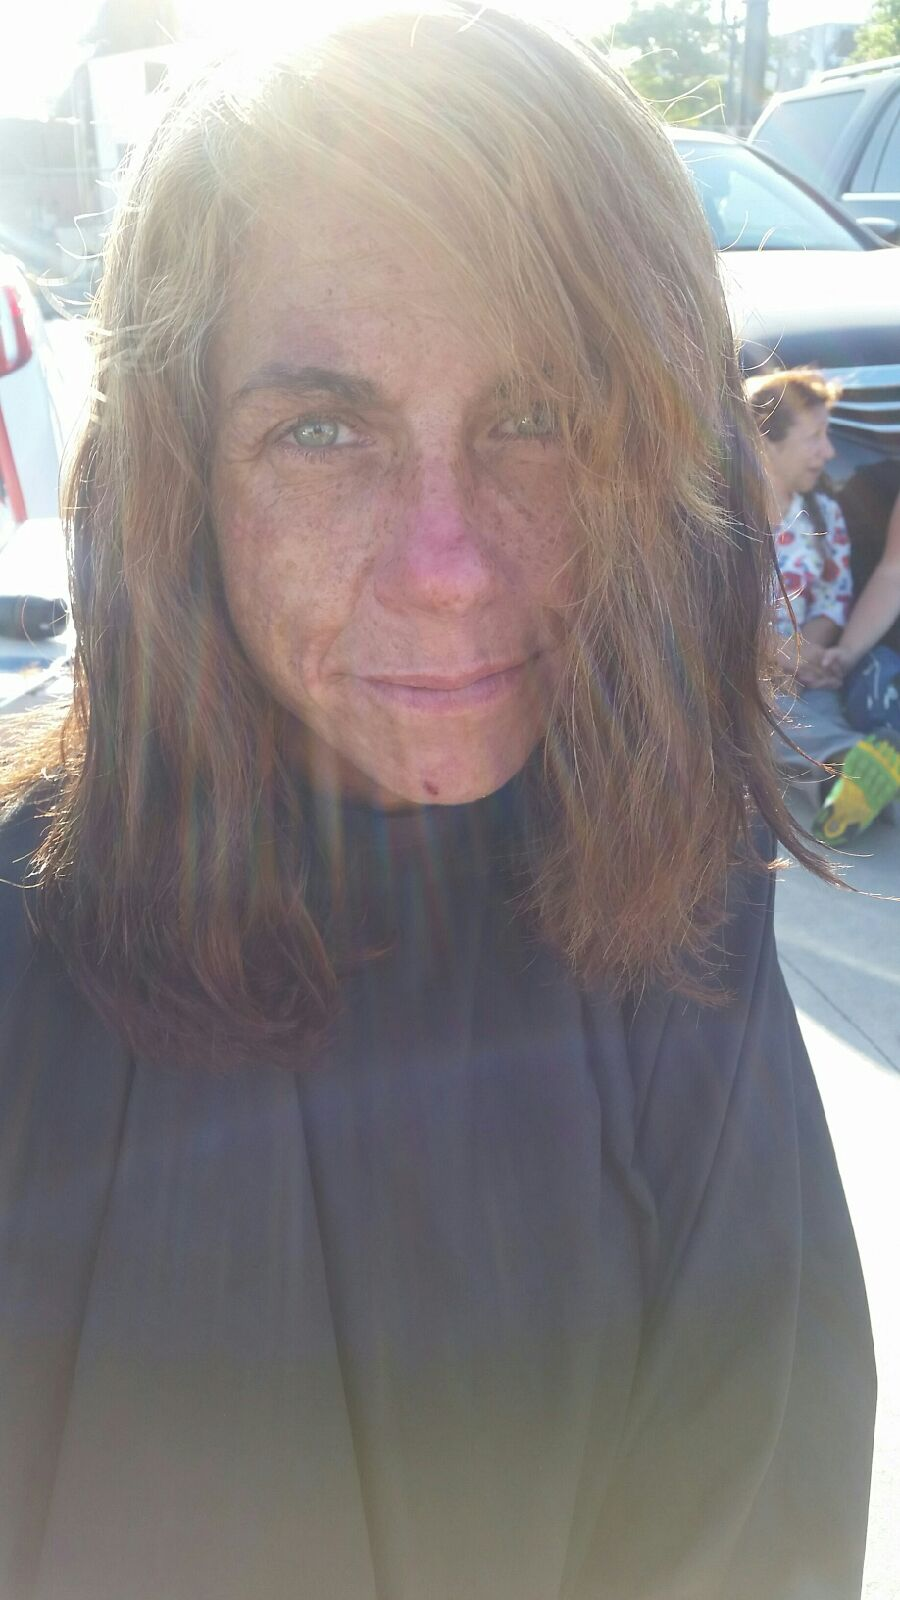 Homeless Hair Cuts Downtown San Diego Special Thanks